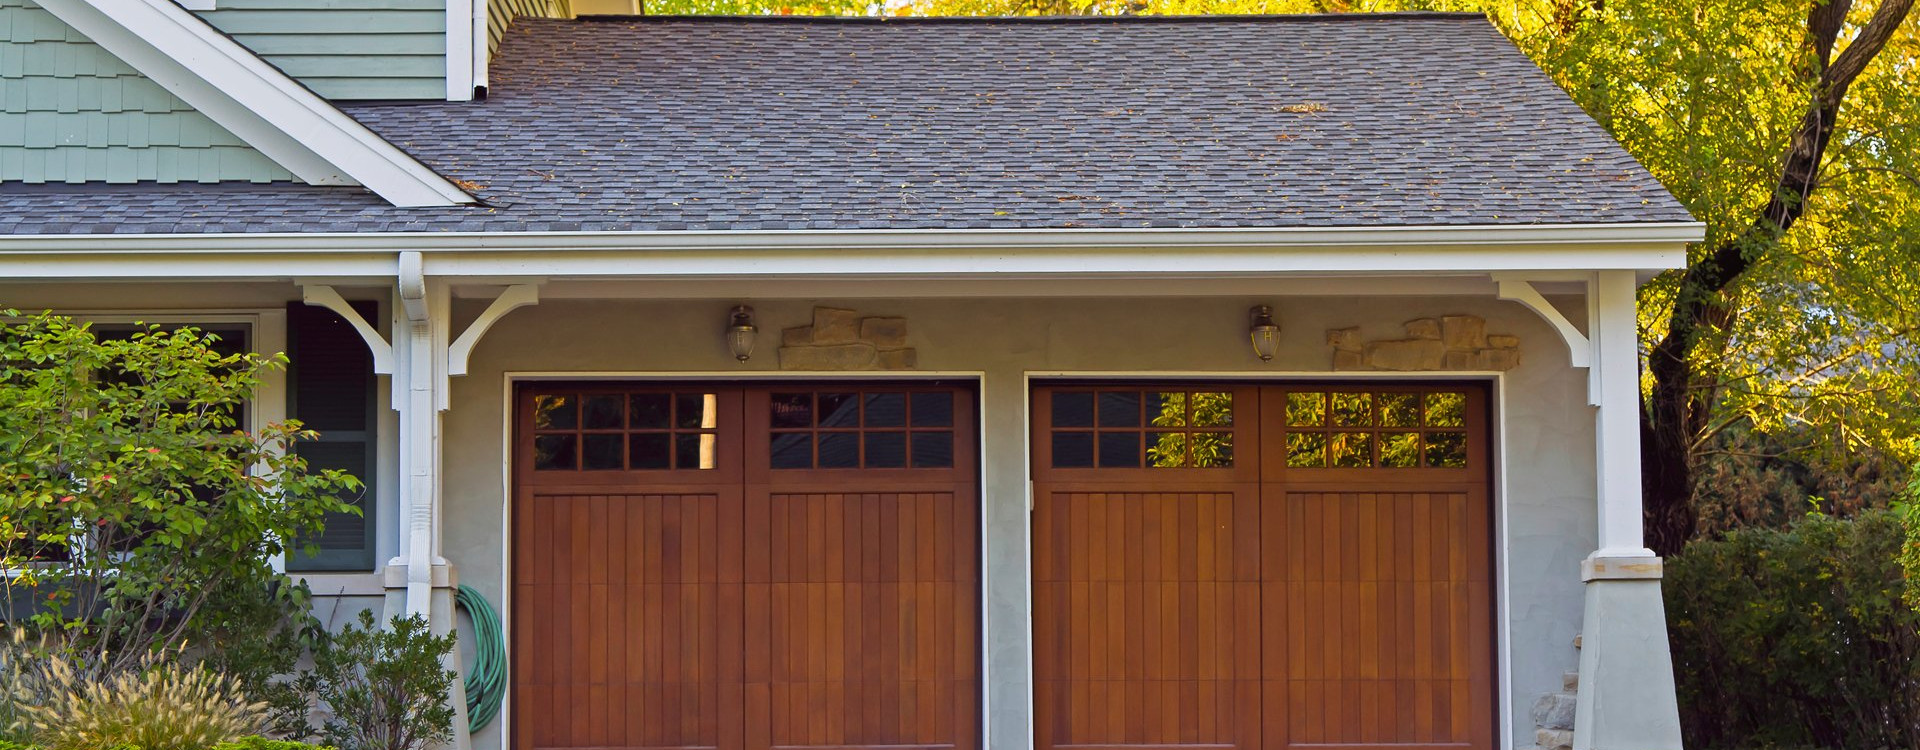 Garage Door Installation – Southern Residential Installations